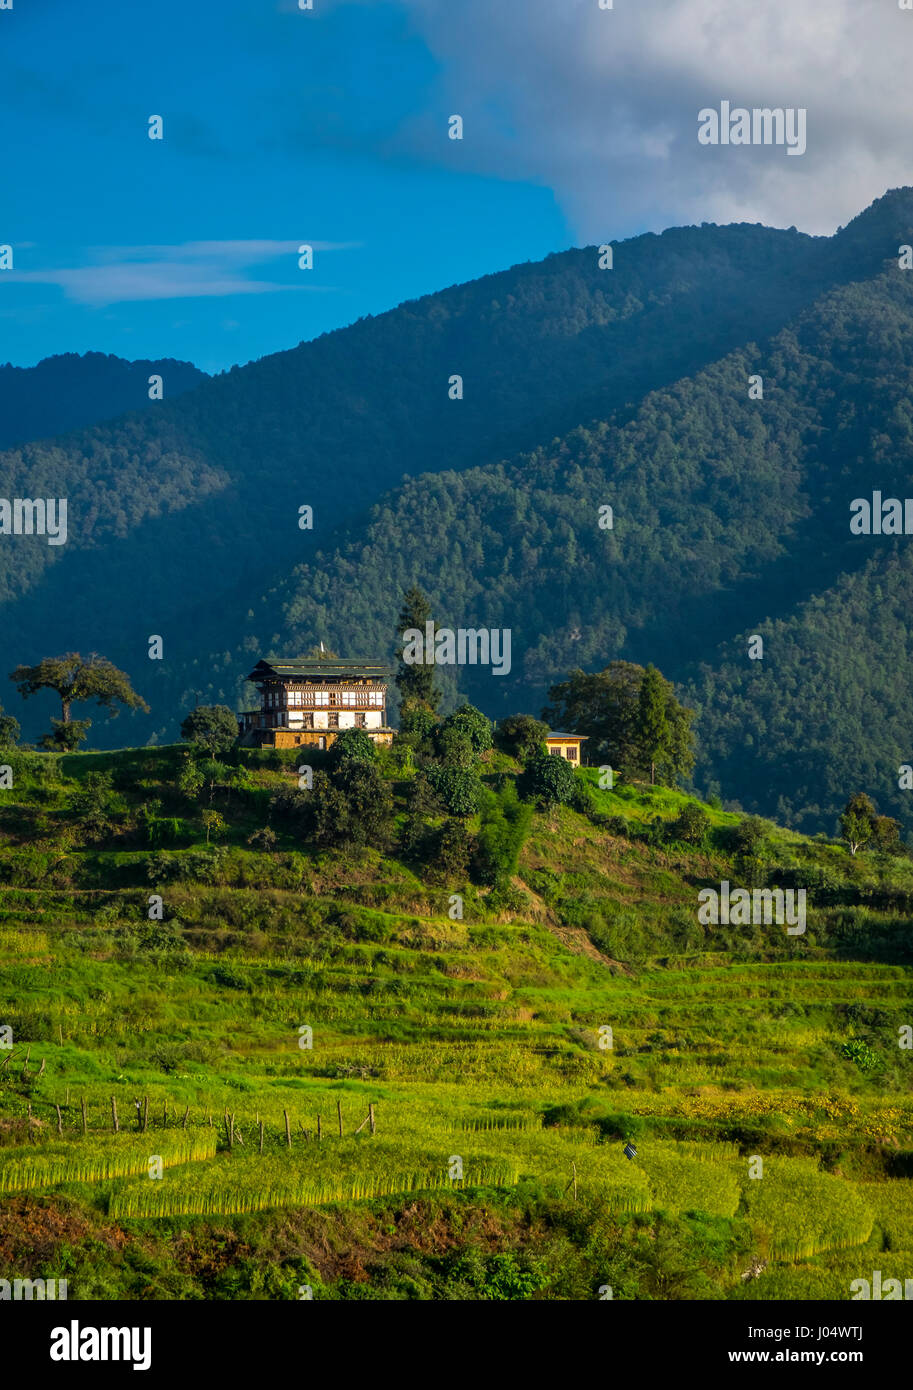 THIMPU, BHUTAN - CIRCA October 2014: House in the countryside in Bhutan - Stock Image